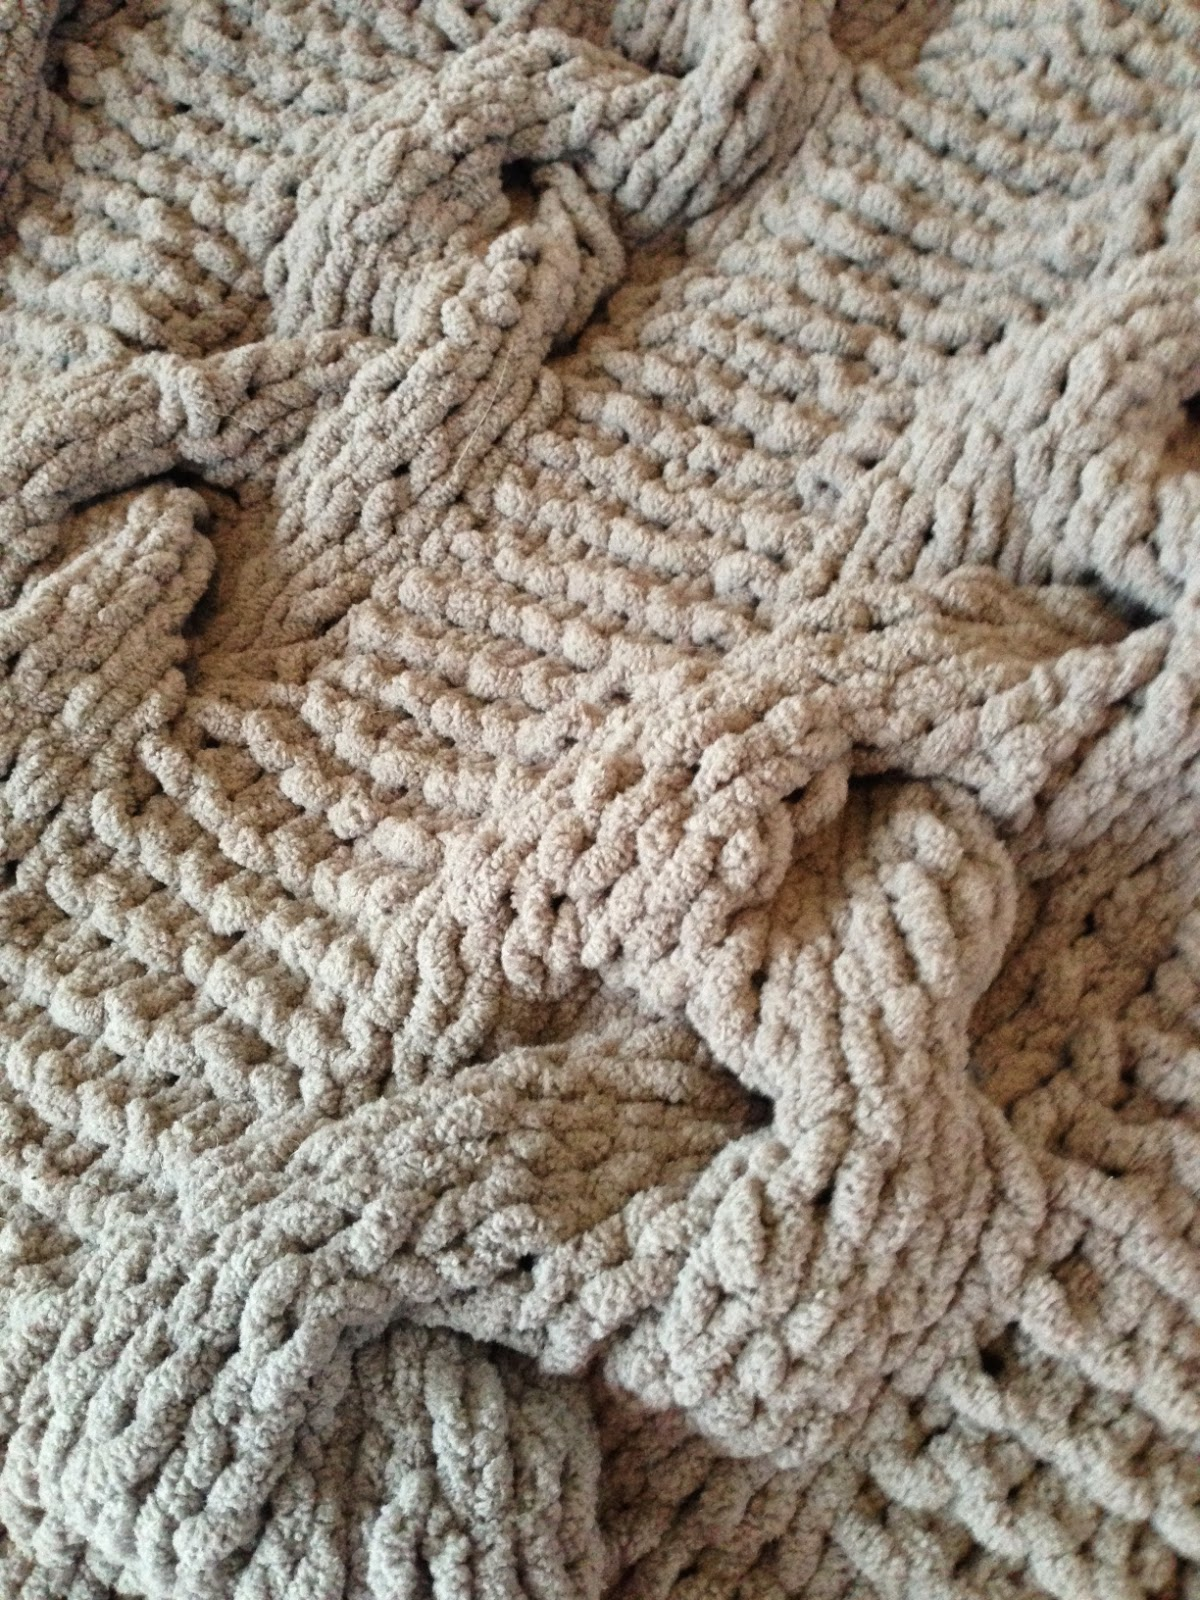 Knitted cable blanket closeup